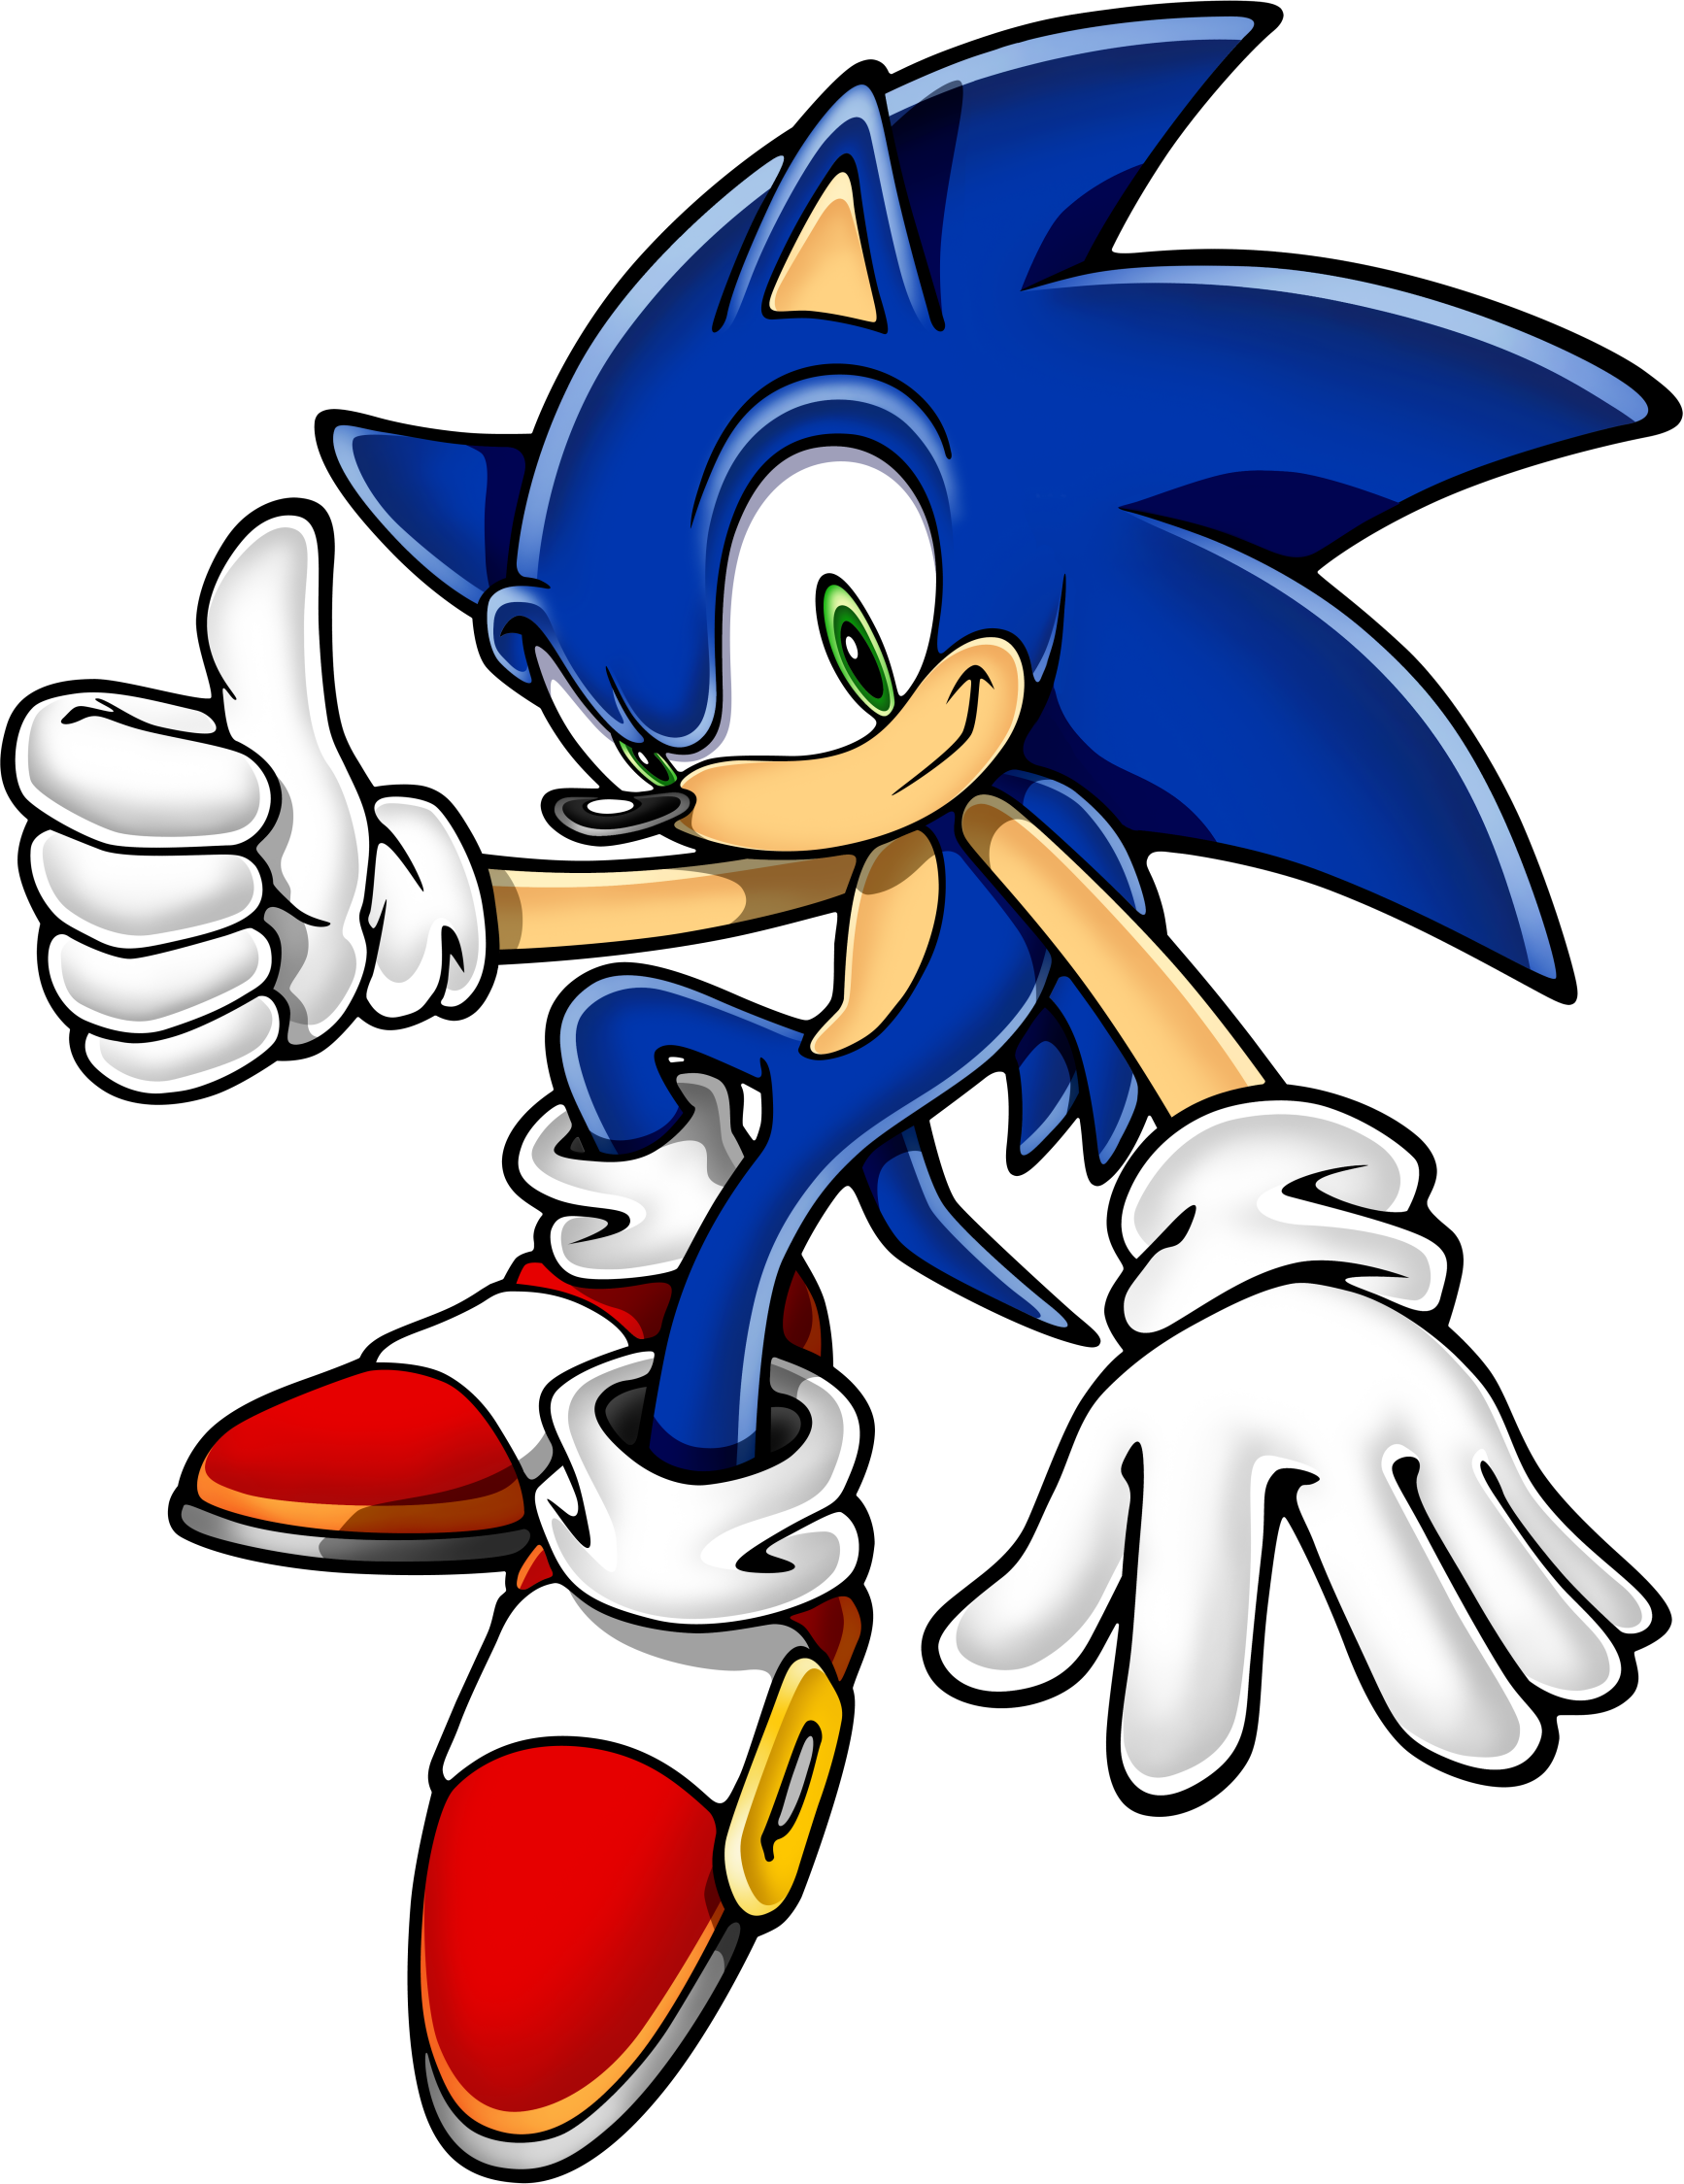 freeuse stock Arcade clipart game zone. Sonic art assets dvd